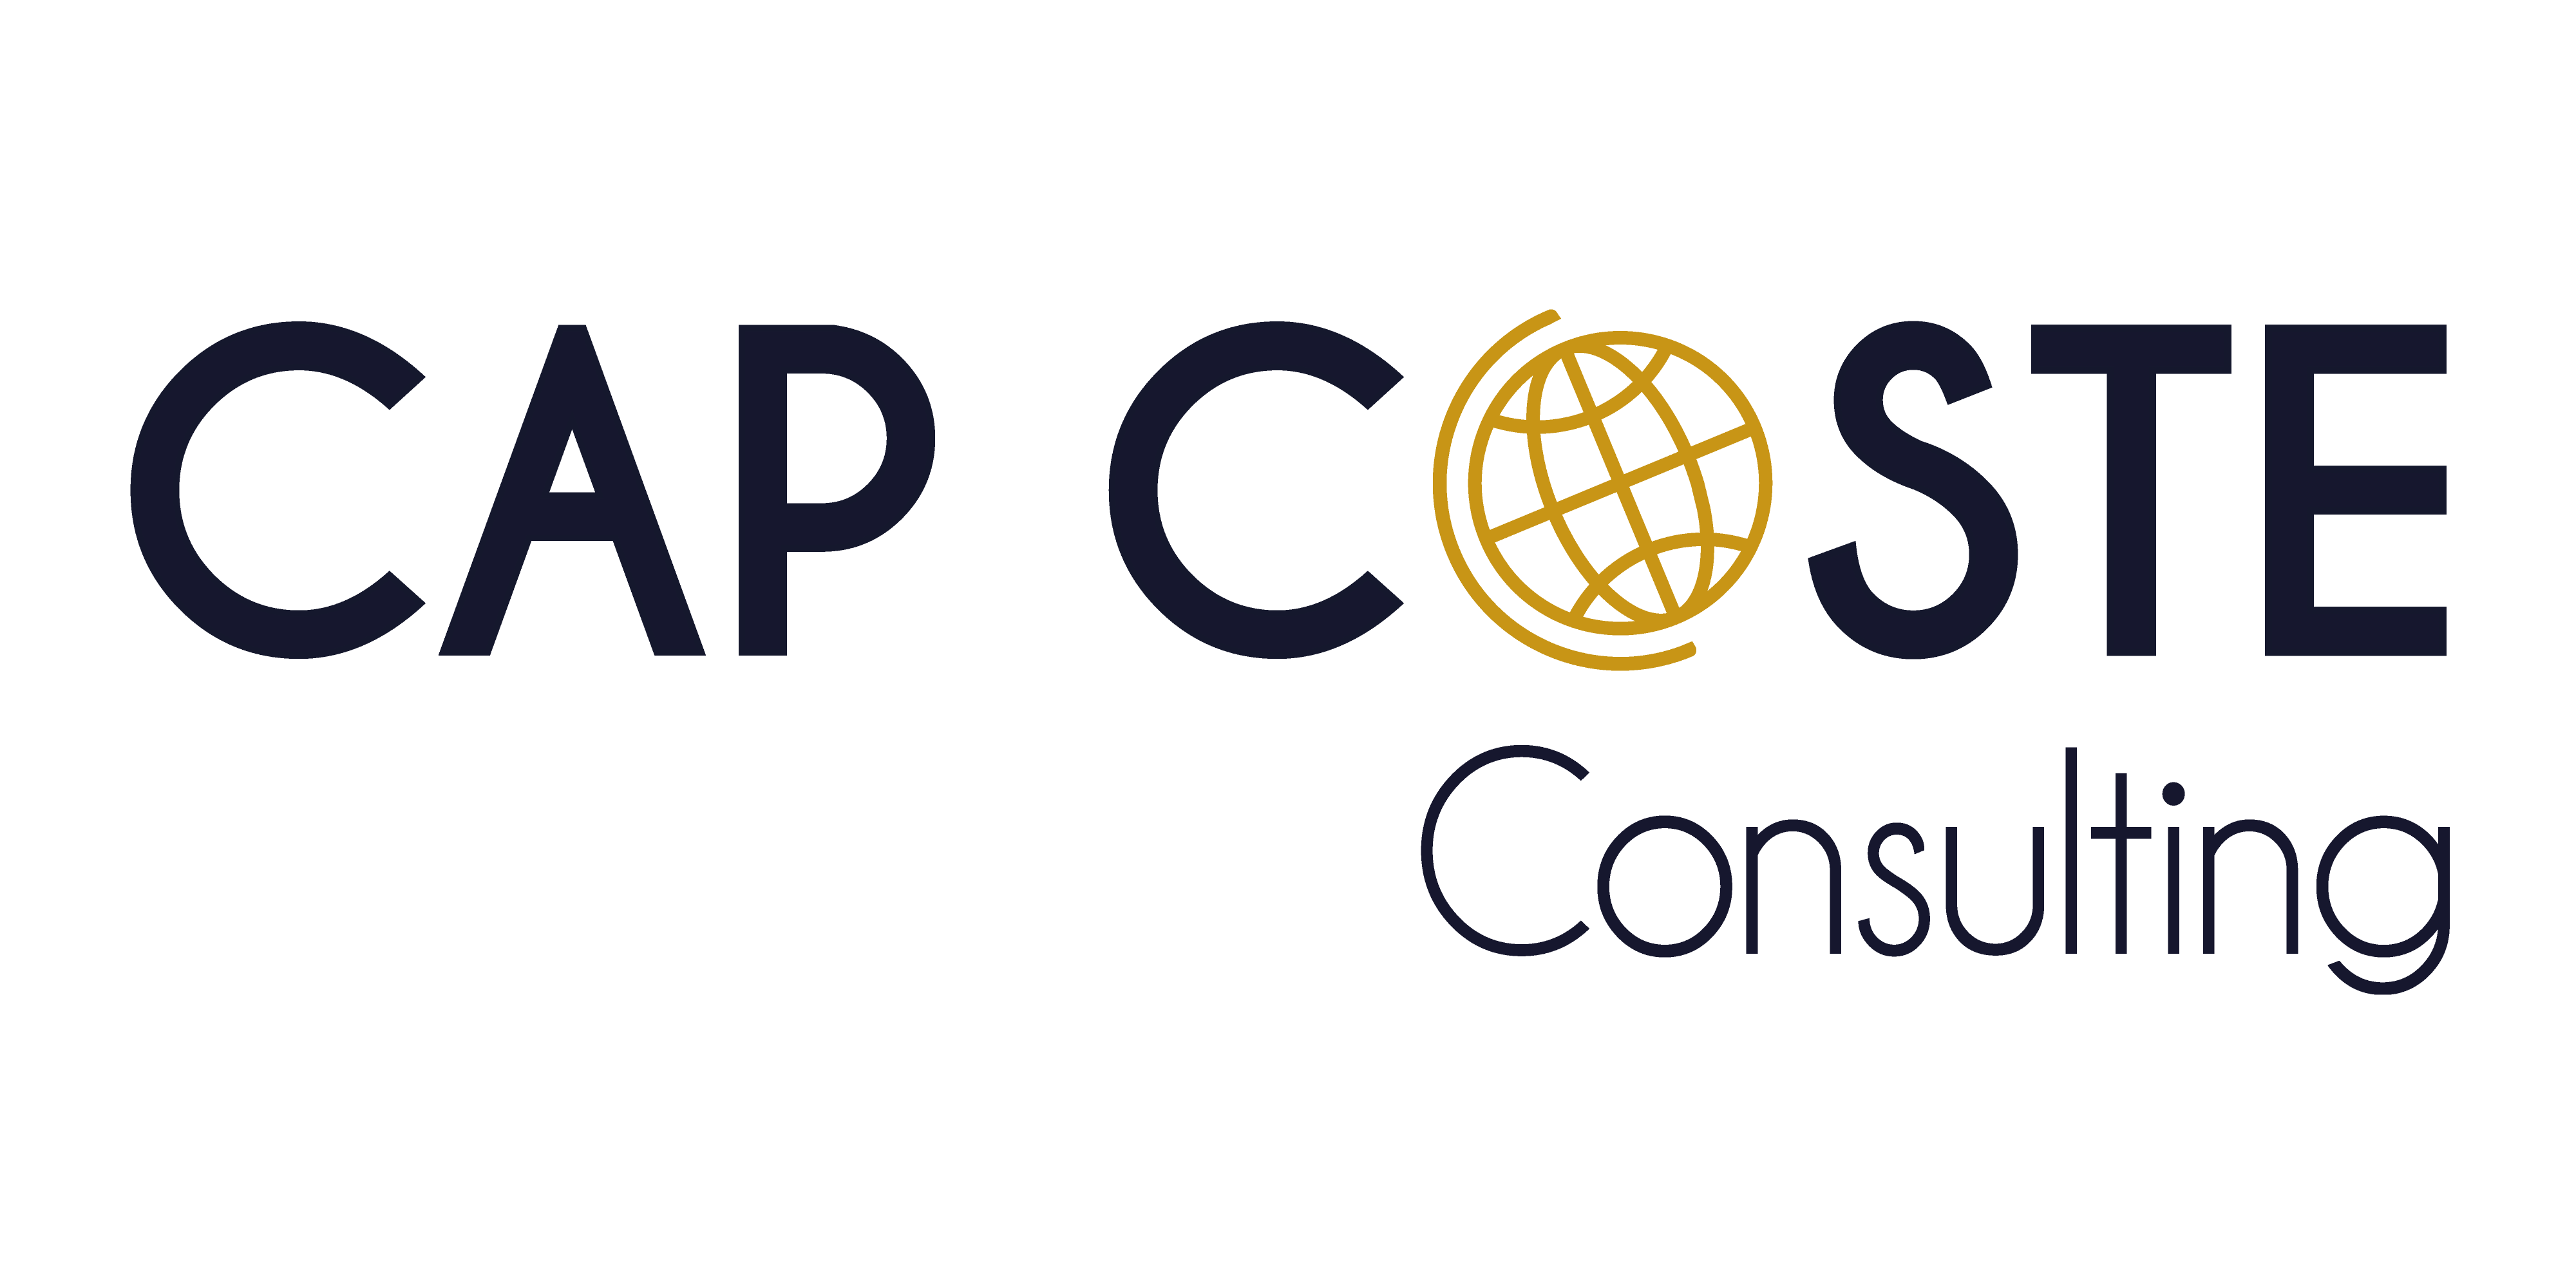 Cap Coste Consulting